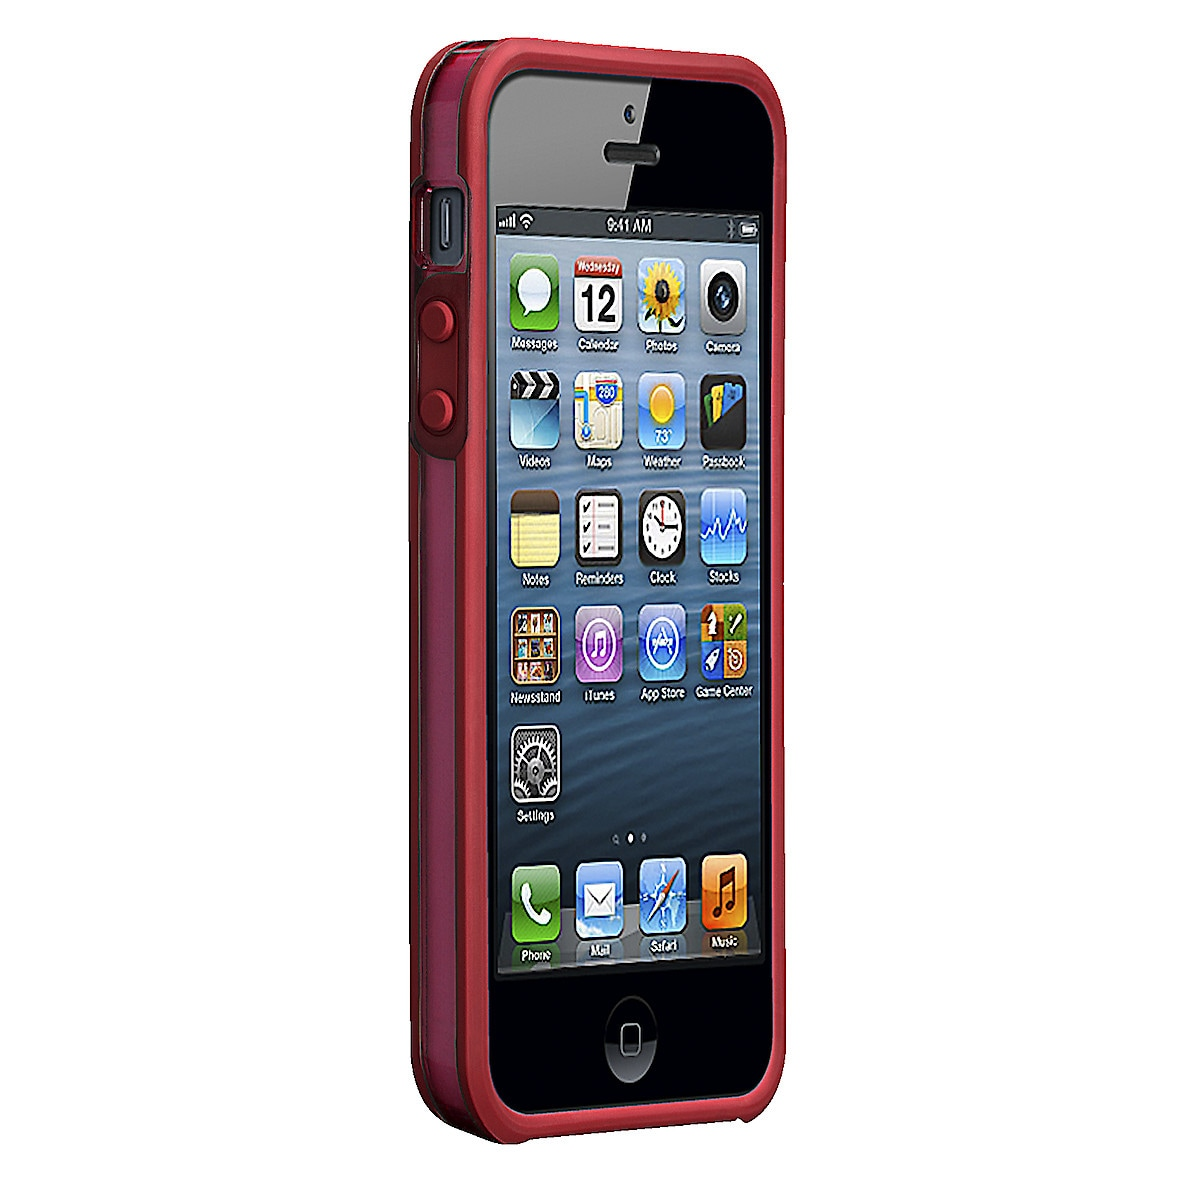 Case-Mate Haze, deksel for iPhone 5